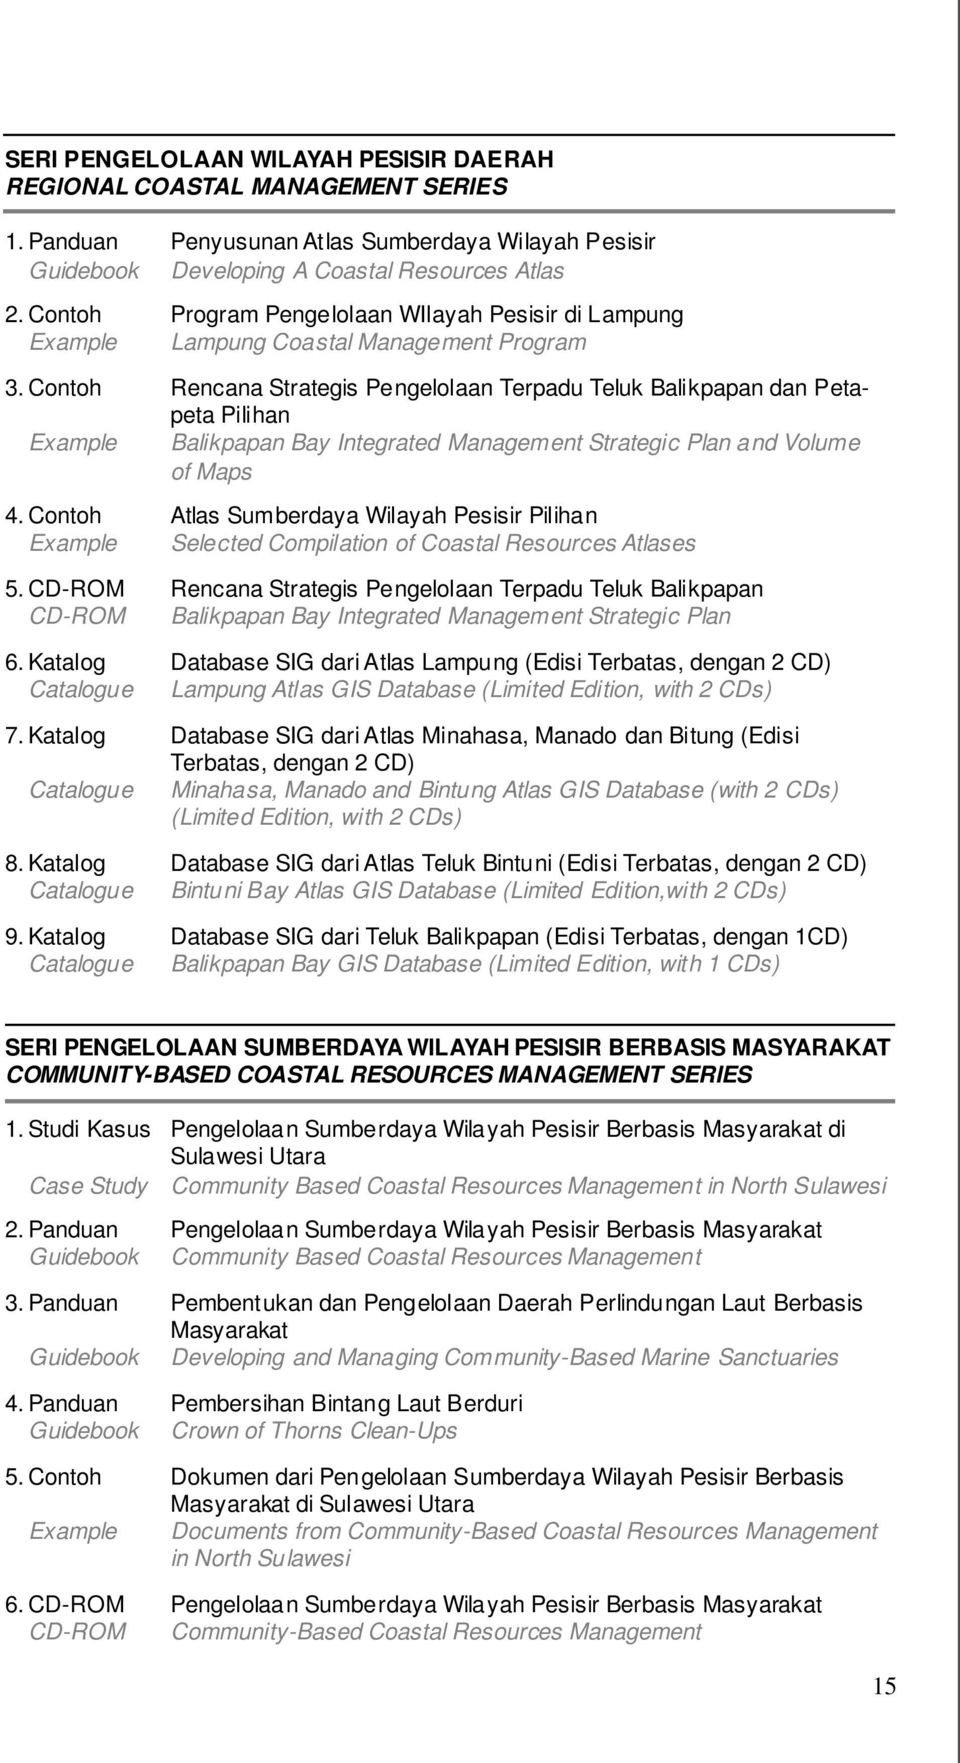 Contoh Rencana Strategis Pengelolaan Terpadu Teluk Balikpapan dan Petapeta Pilihan Example Balikpapan Bay Integrated Management Strategic Plan and Volume of Maps 4.